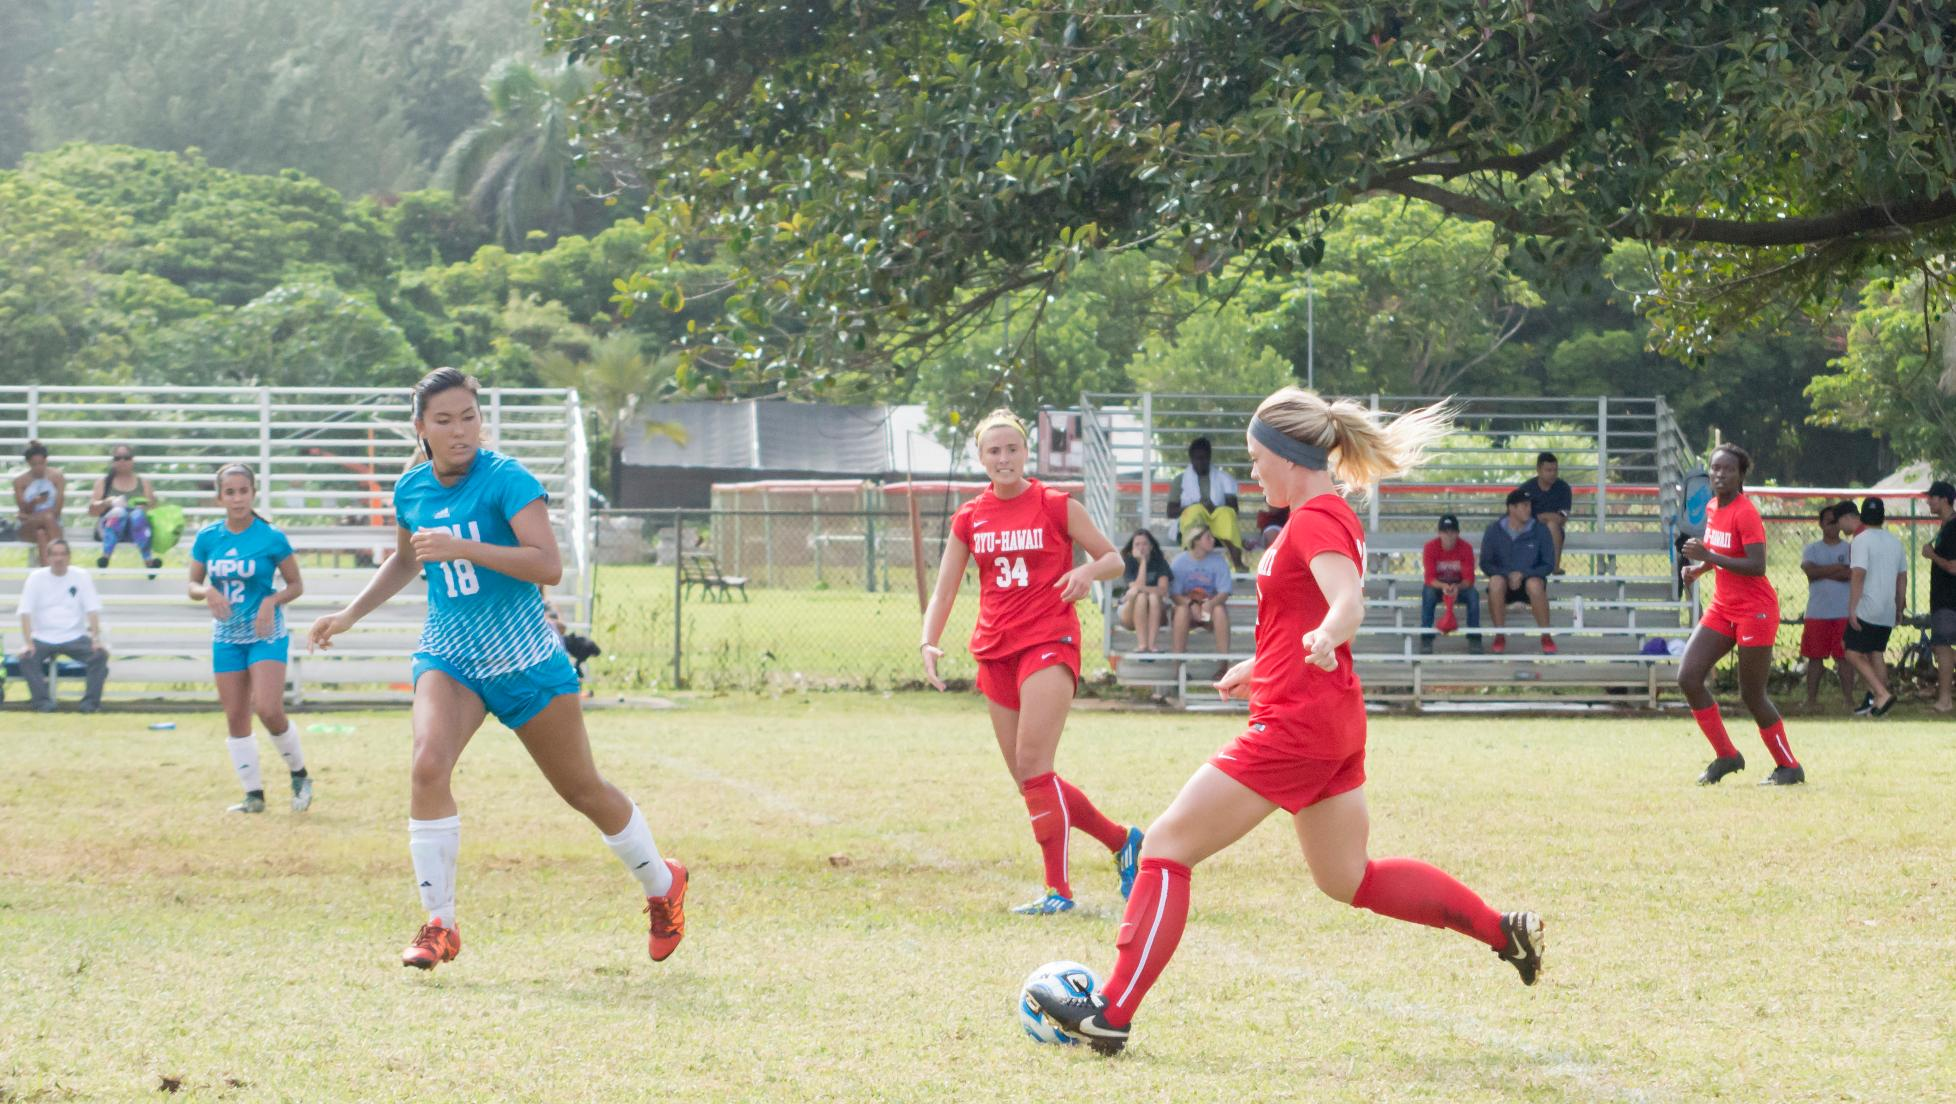 Lady Seasiders prepared for second meeting with Sharks